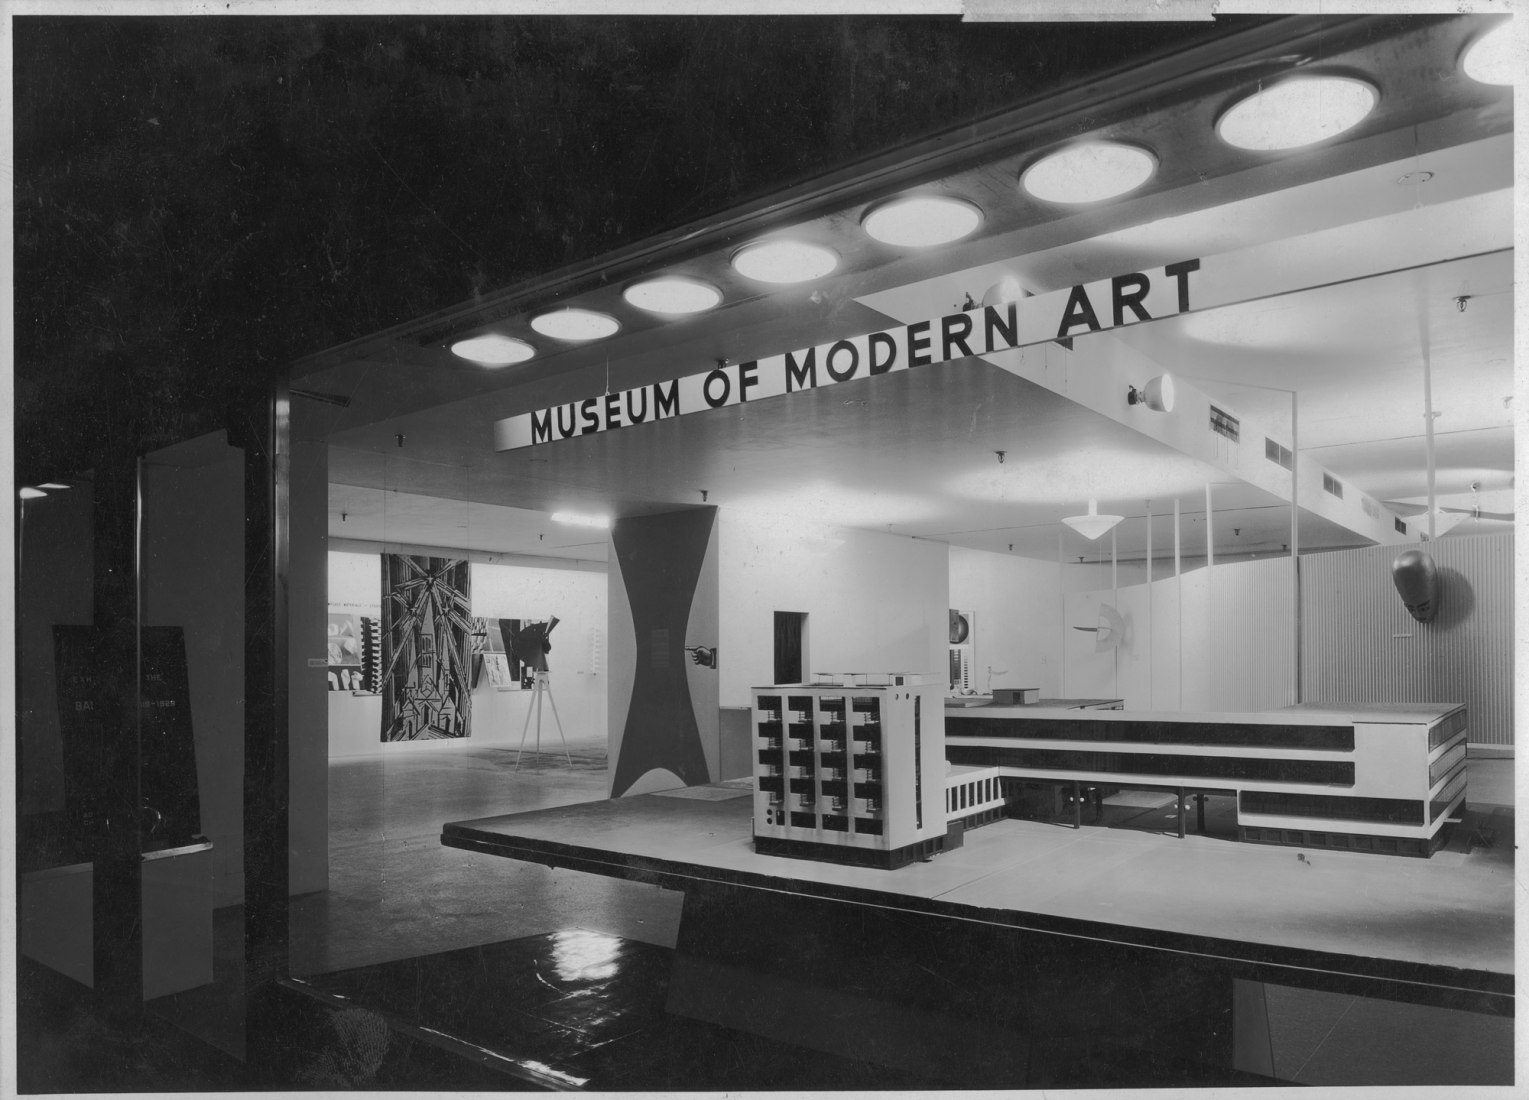 Installation view of the exhibition, Bauhaus: 1919-1928, on view December 7, 1938 through January 30, 1939 at The Museum of Modern Art, New York. Image courtesy of The Museum of Modern Art Archives, New York. Photographer: Soichi Sunami